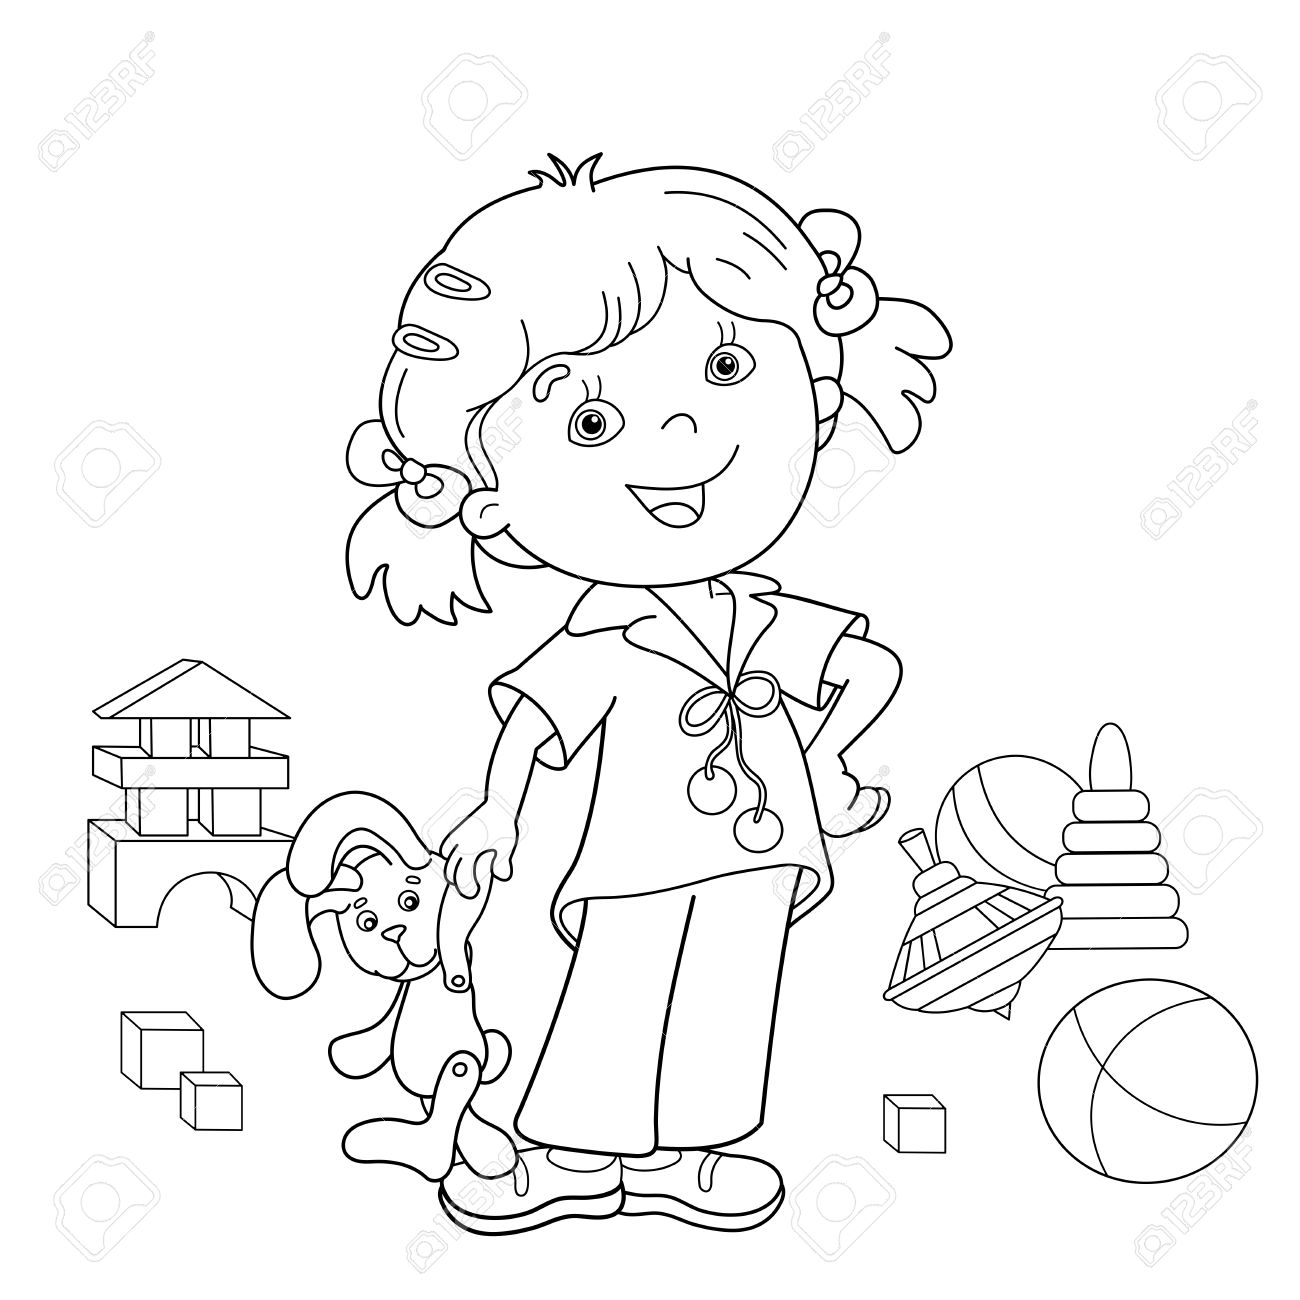 coloring page outline of cartoon with toys coloring book